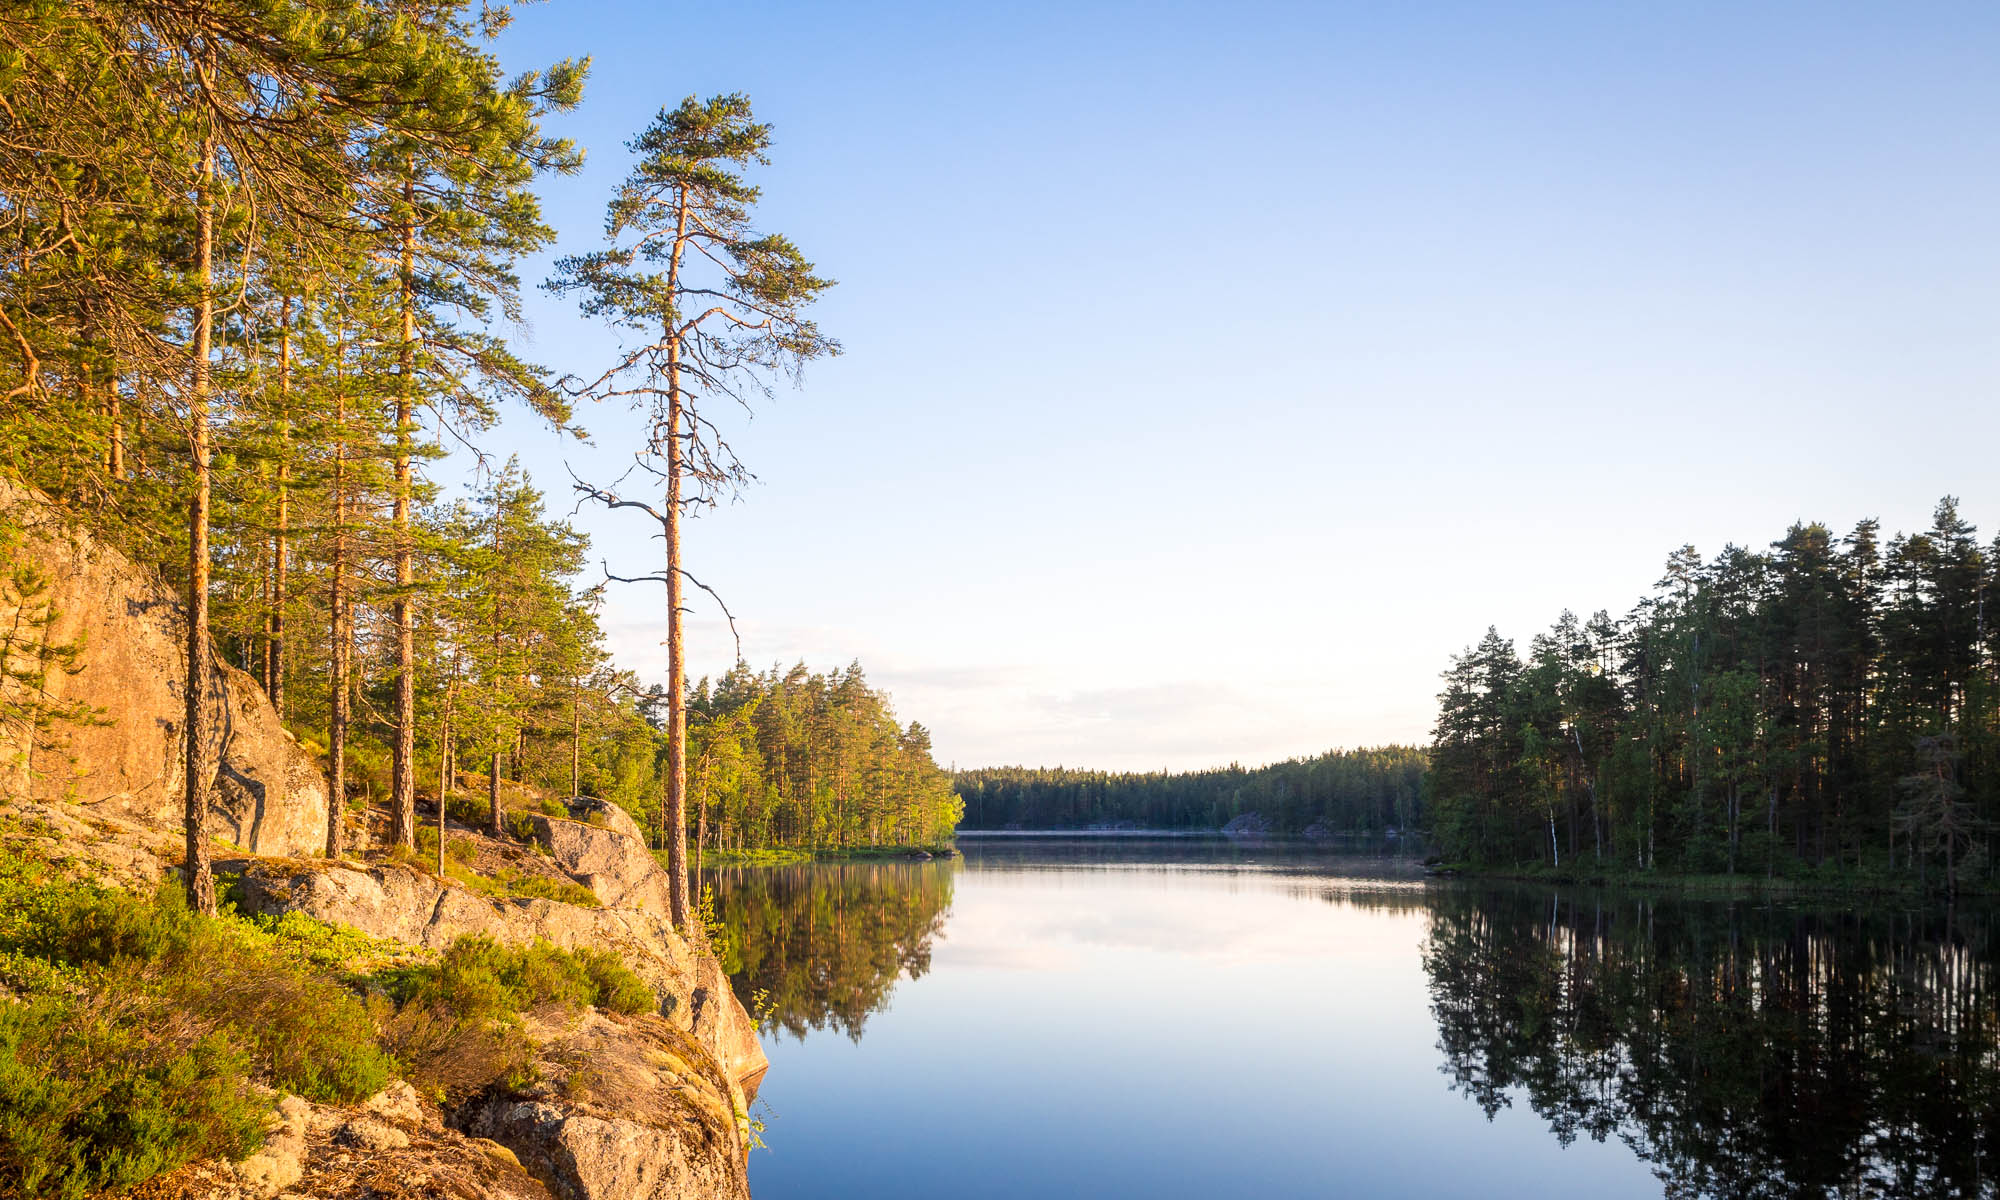 Nuuksio National Park in summer, in June. Summer in Finland is clear lakes and forests. Finnish nature near Helsinki, Finland.